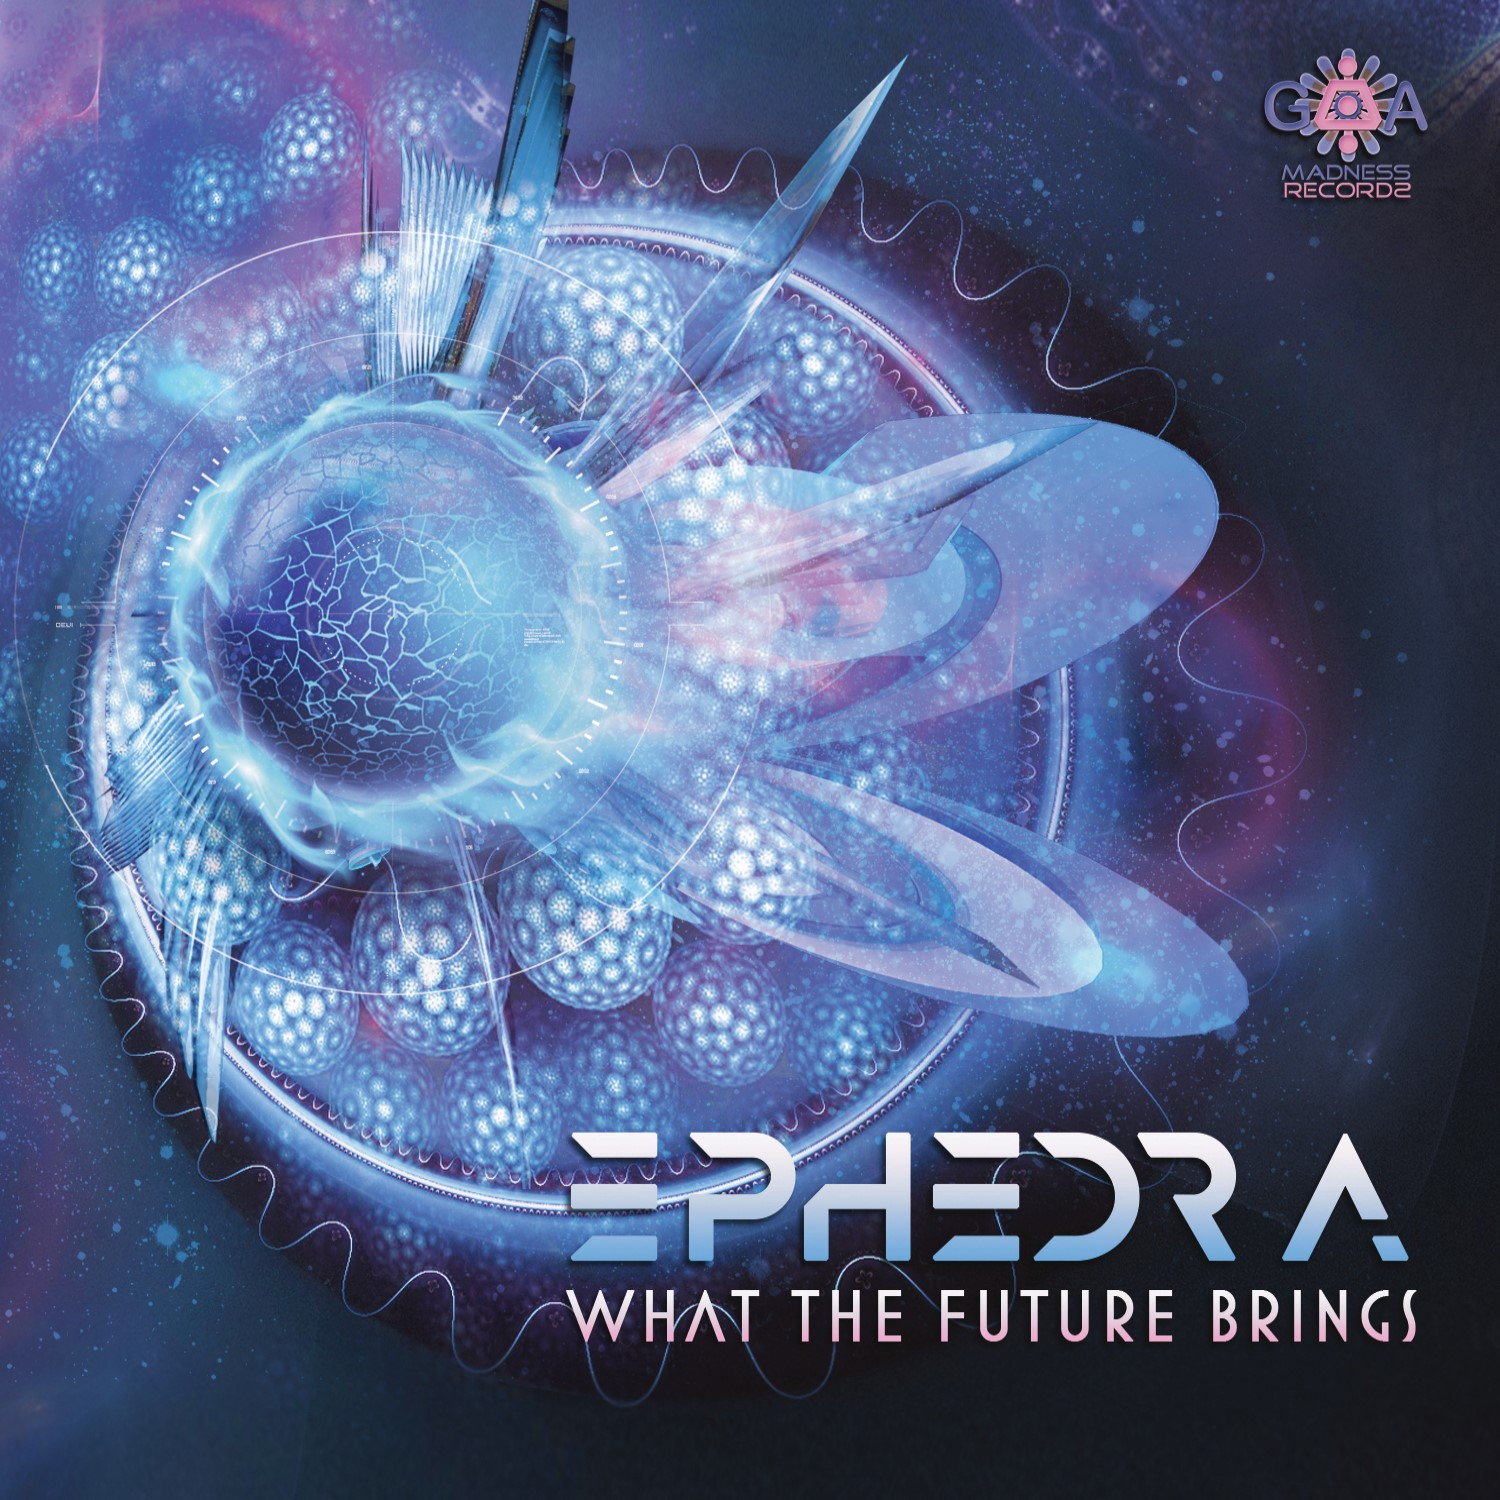 Ephedra: What The Future Brings